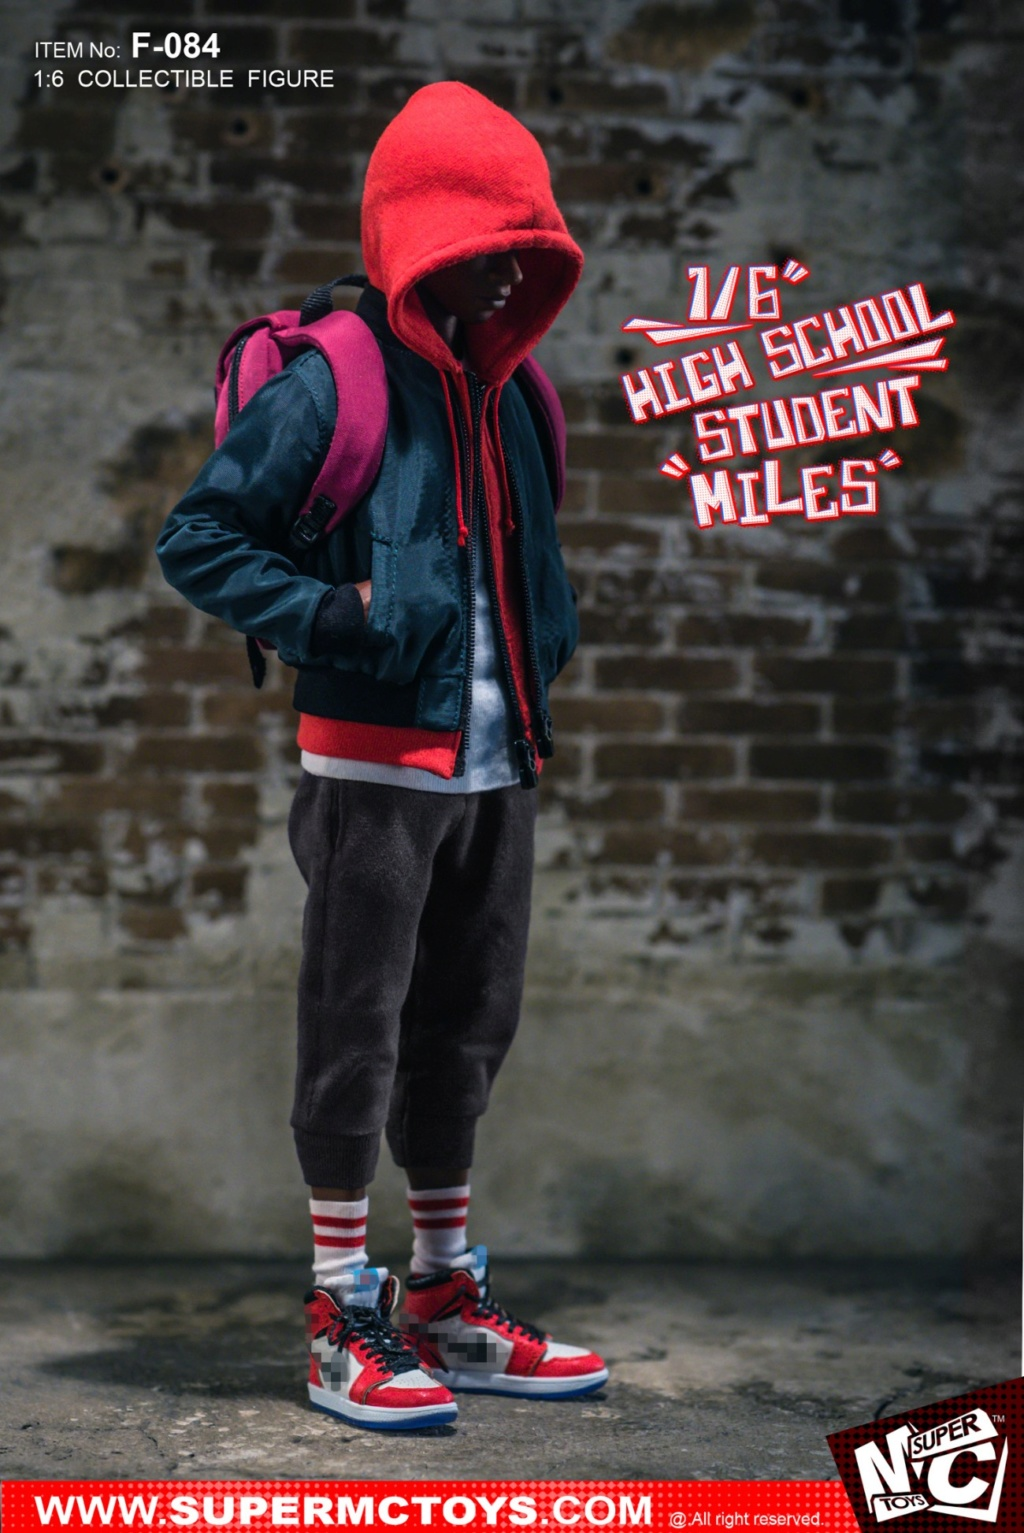 animatedmovie-based - NEW PRODUCT: SUPERMCTOYS: 1/6 High School Students - Little Black Miles Miles Movable F-084# 19373210